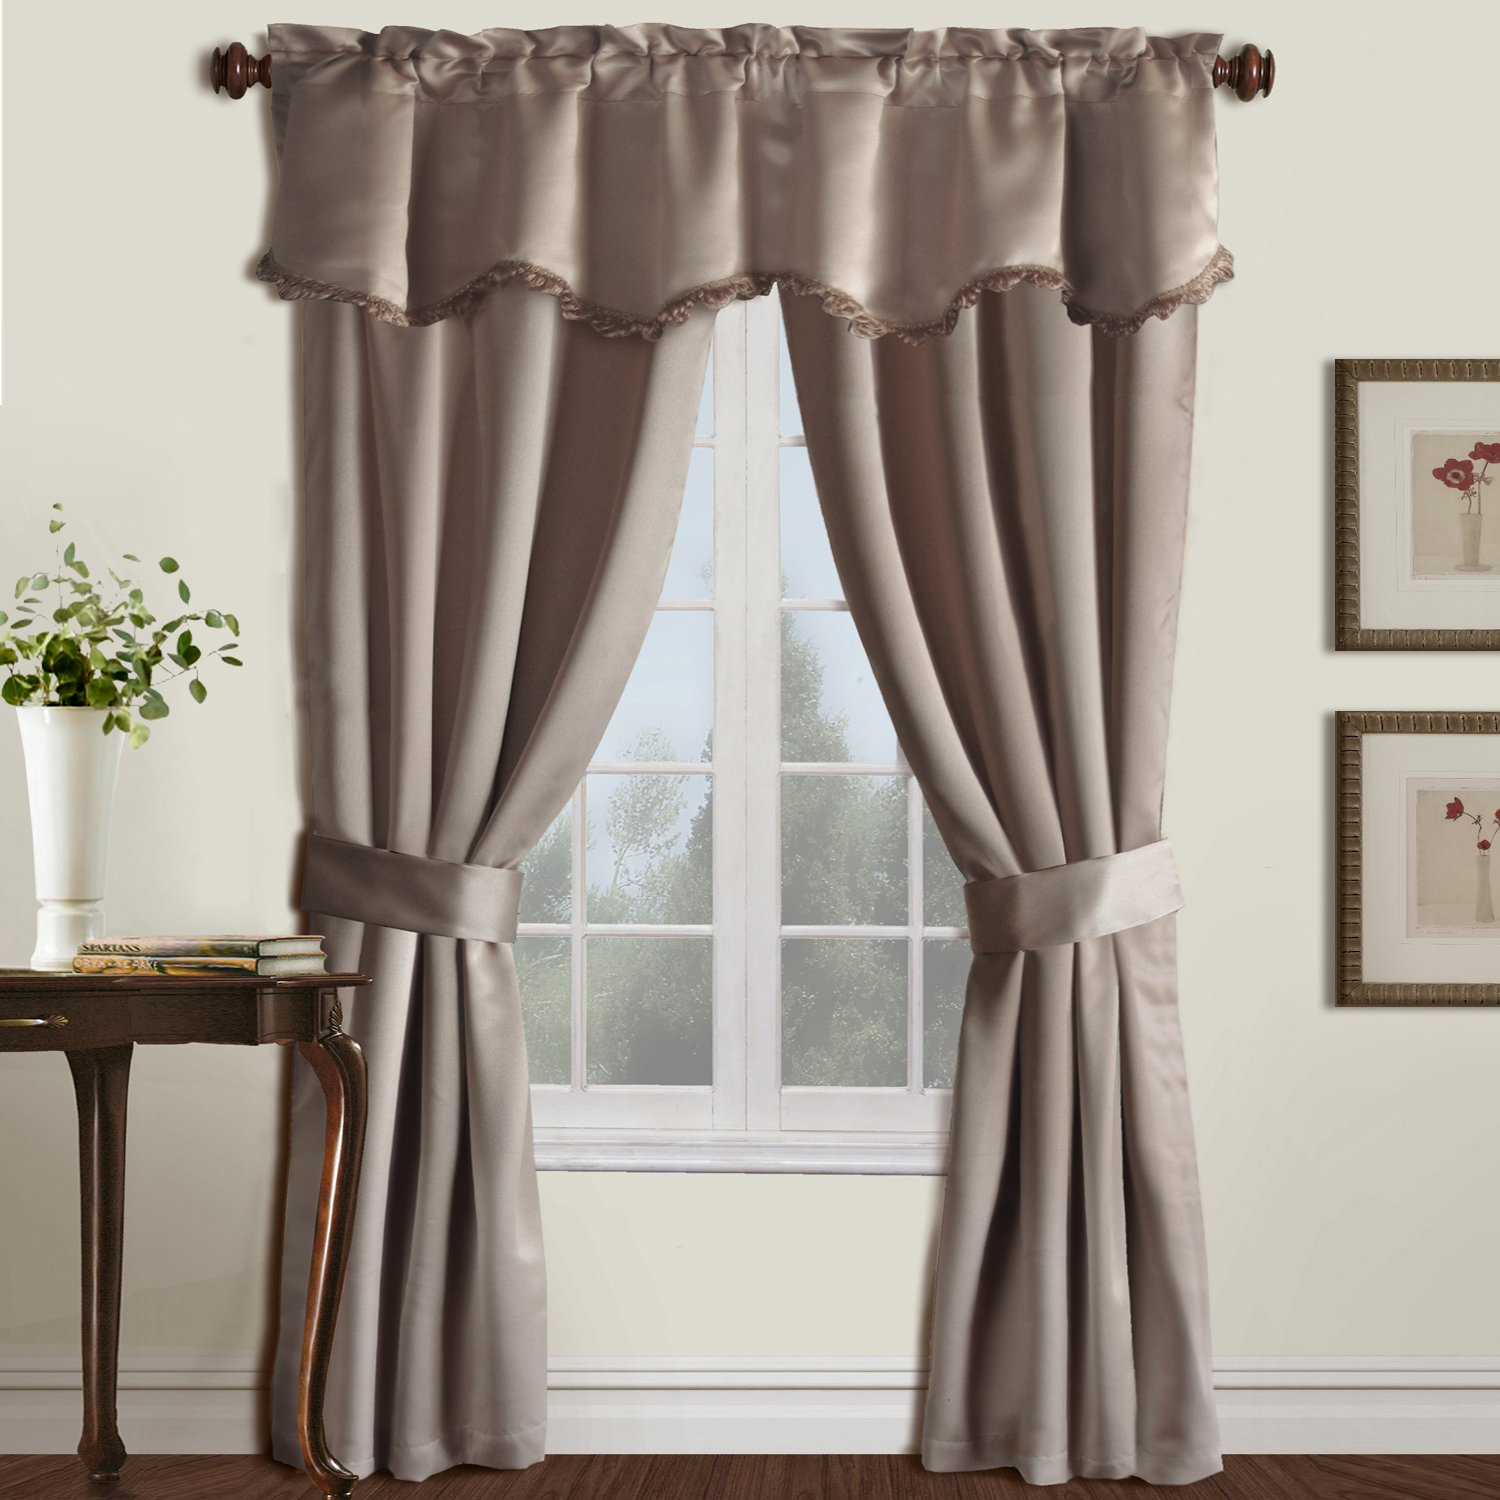 United Curtain Burlington Blackout Window Curtain Five Piece Panel Set, 52 by 84-Inch, Taupe